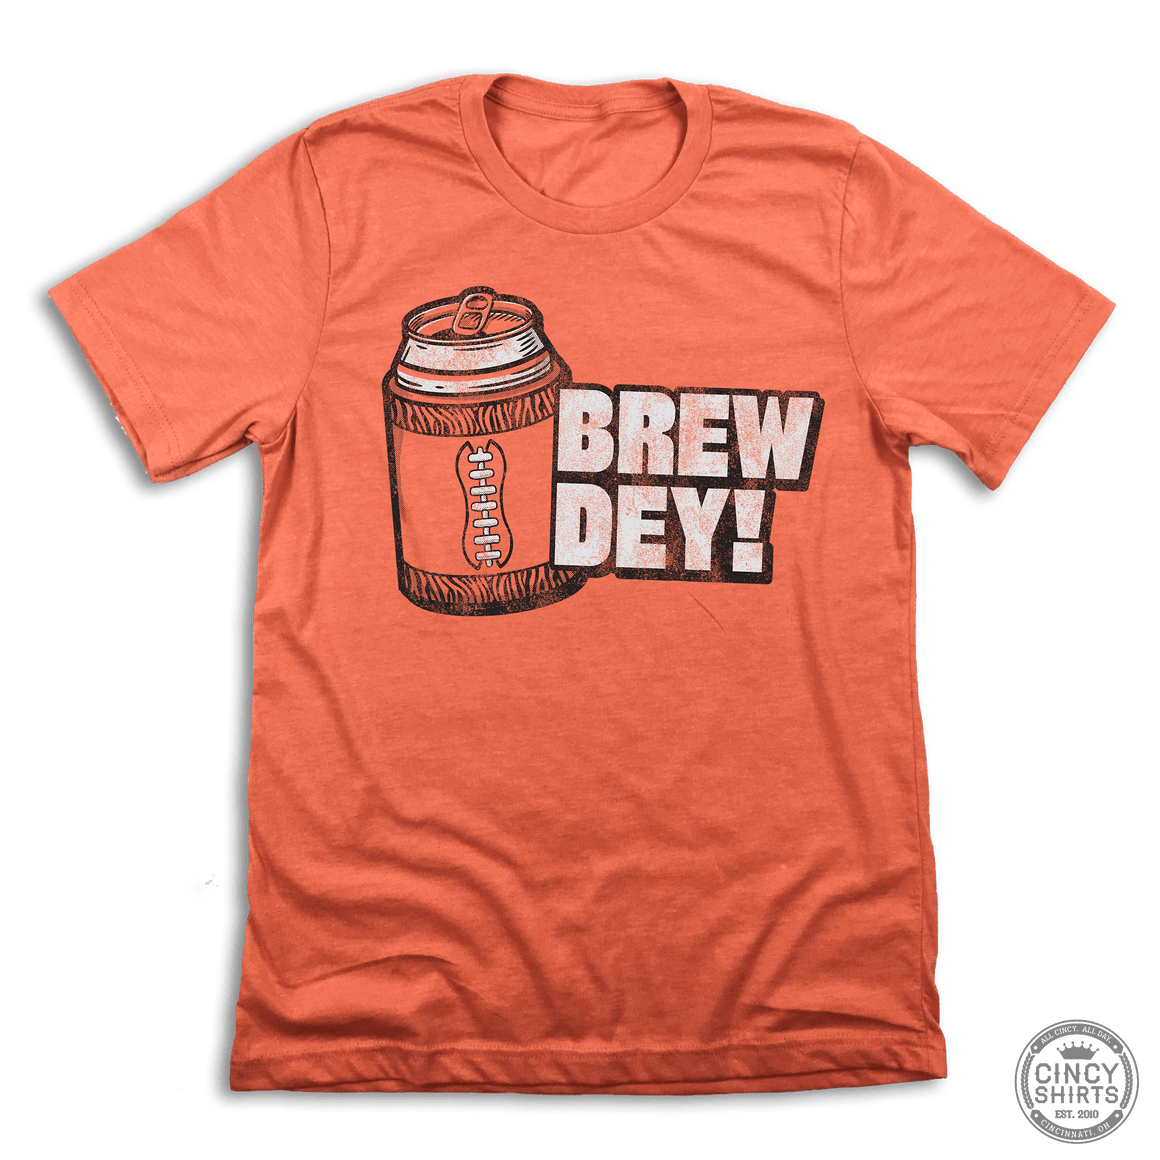 Brew Dey! - Cincy Shirts